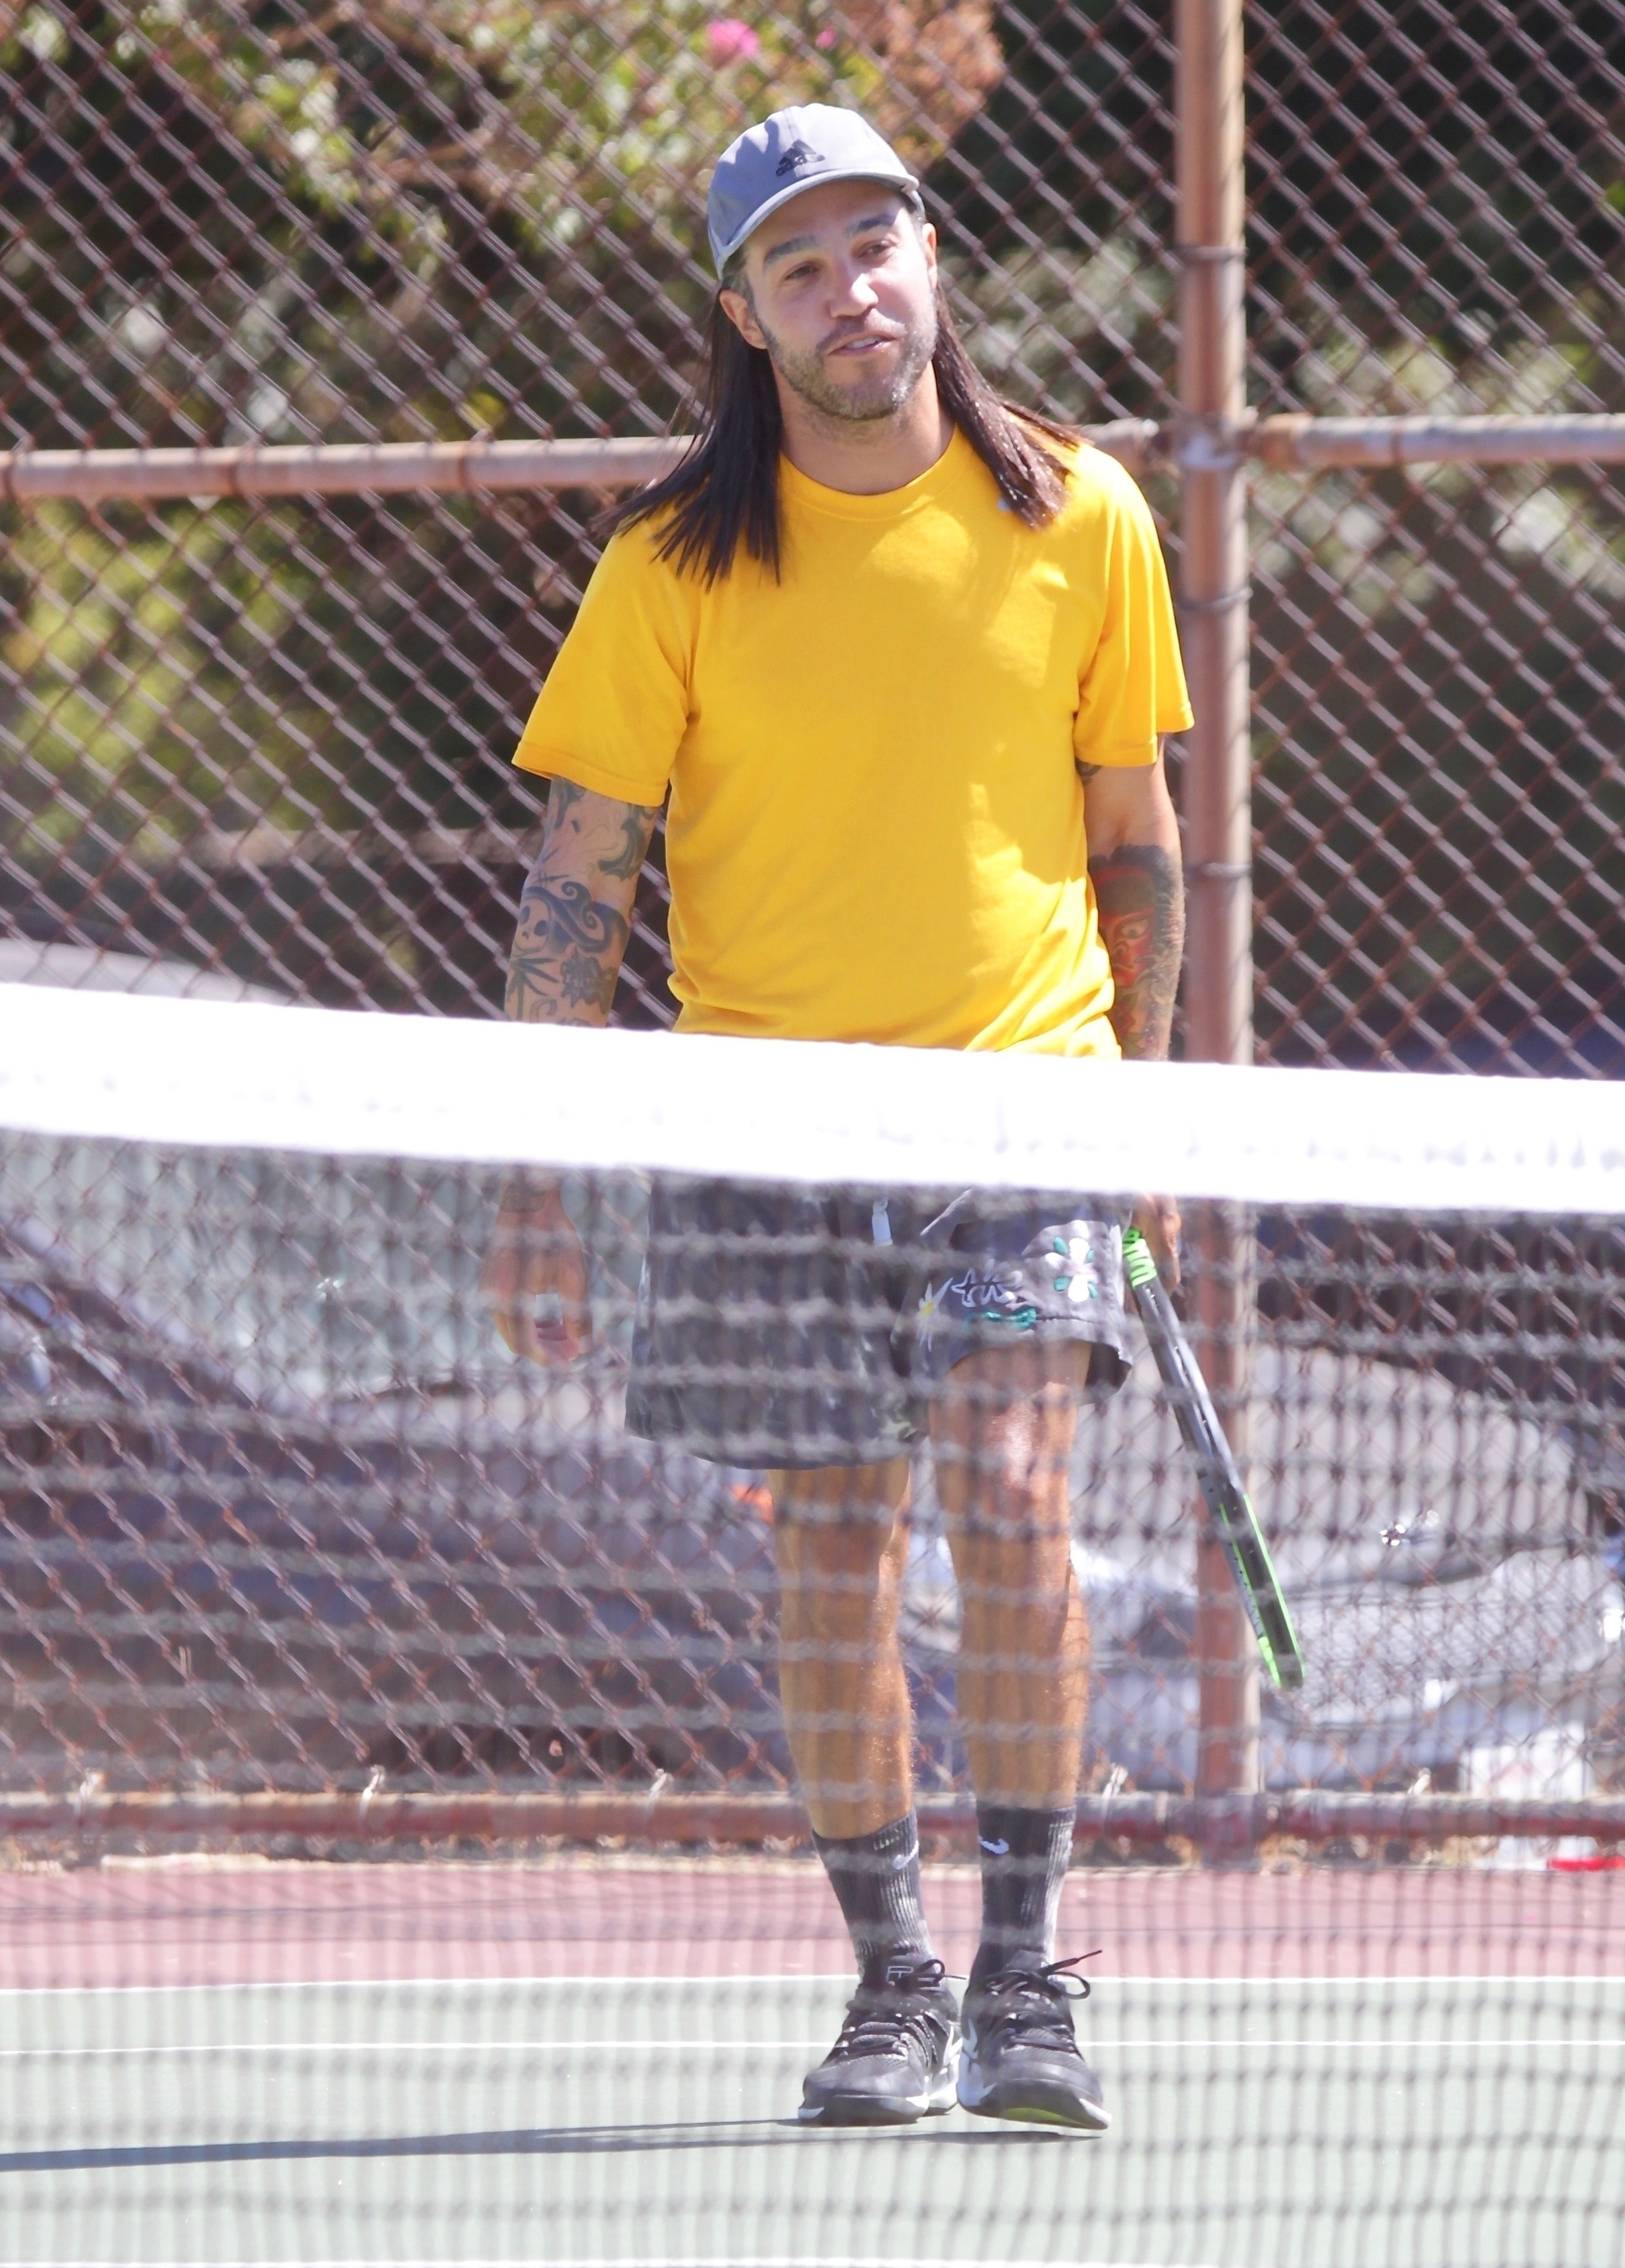 Pete Wentz tennis